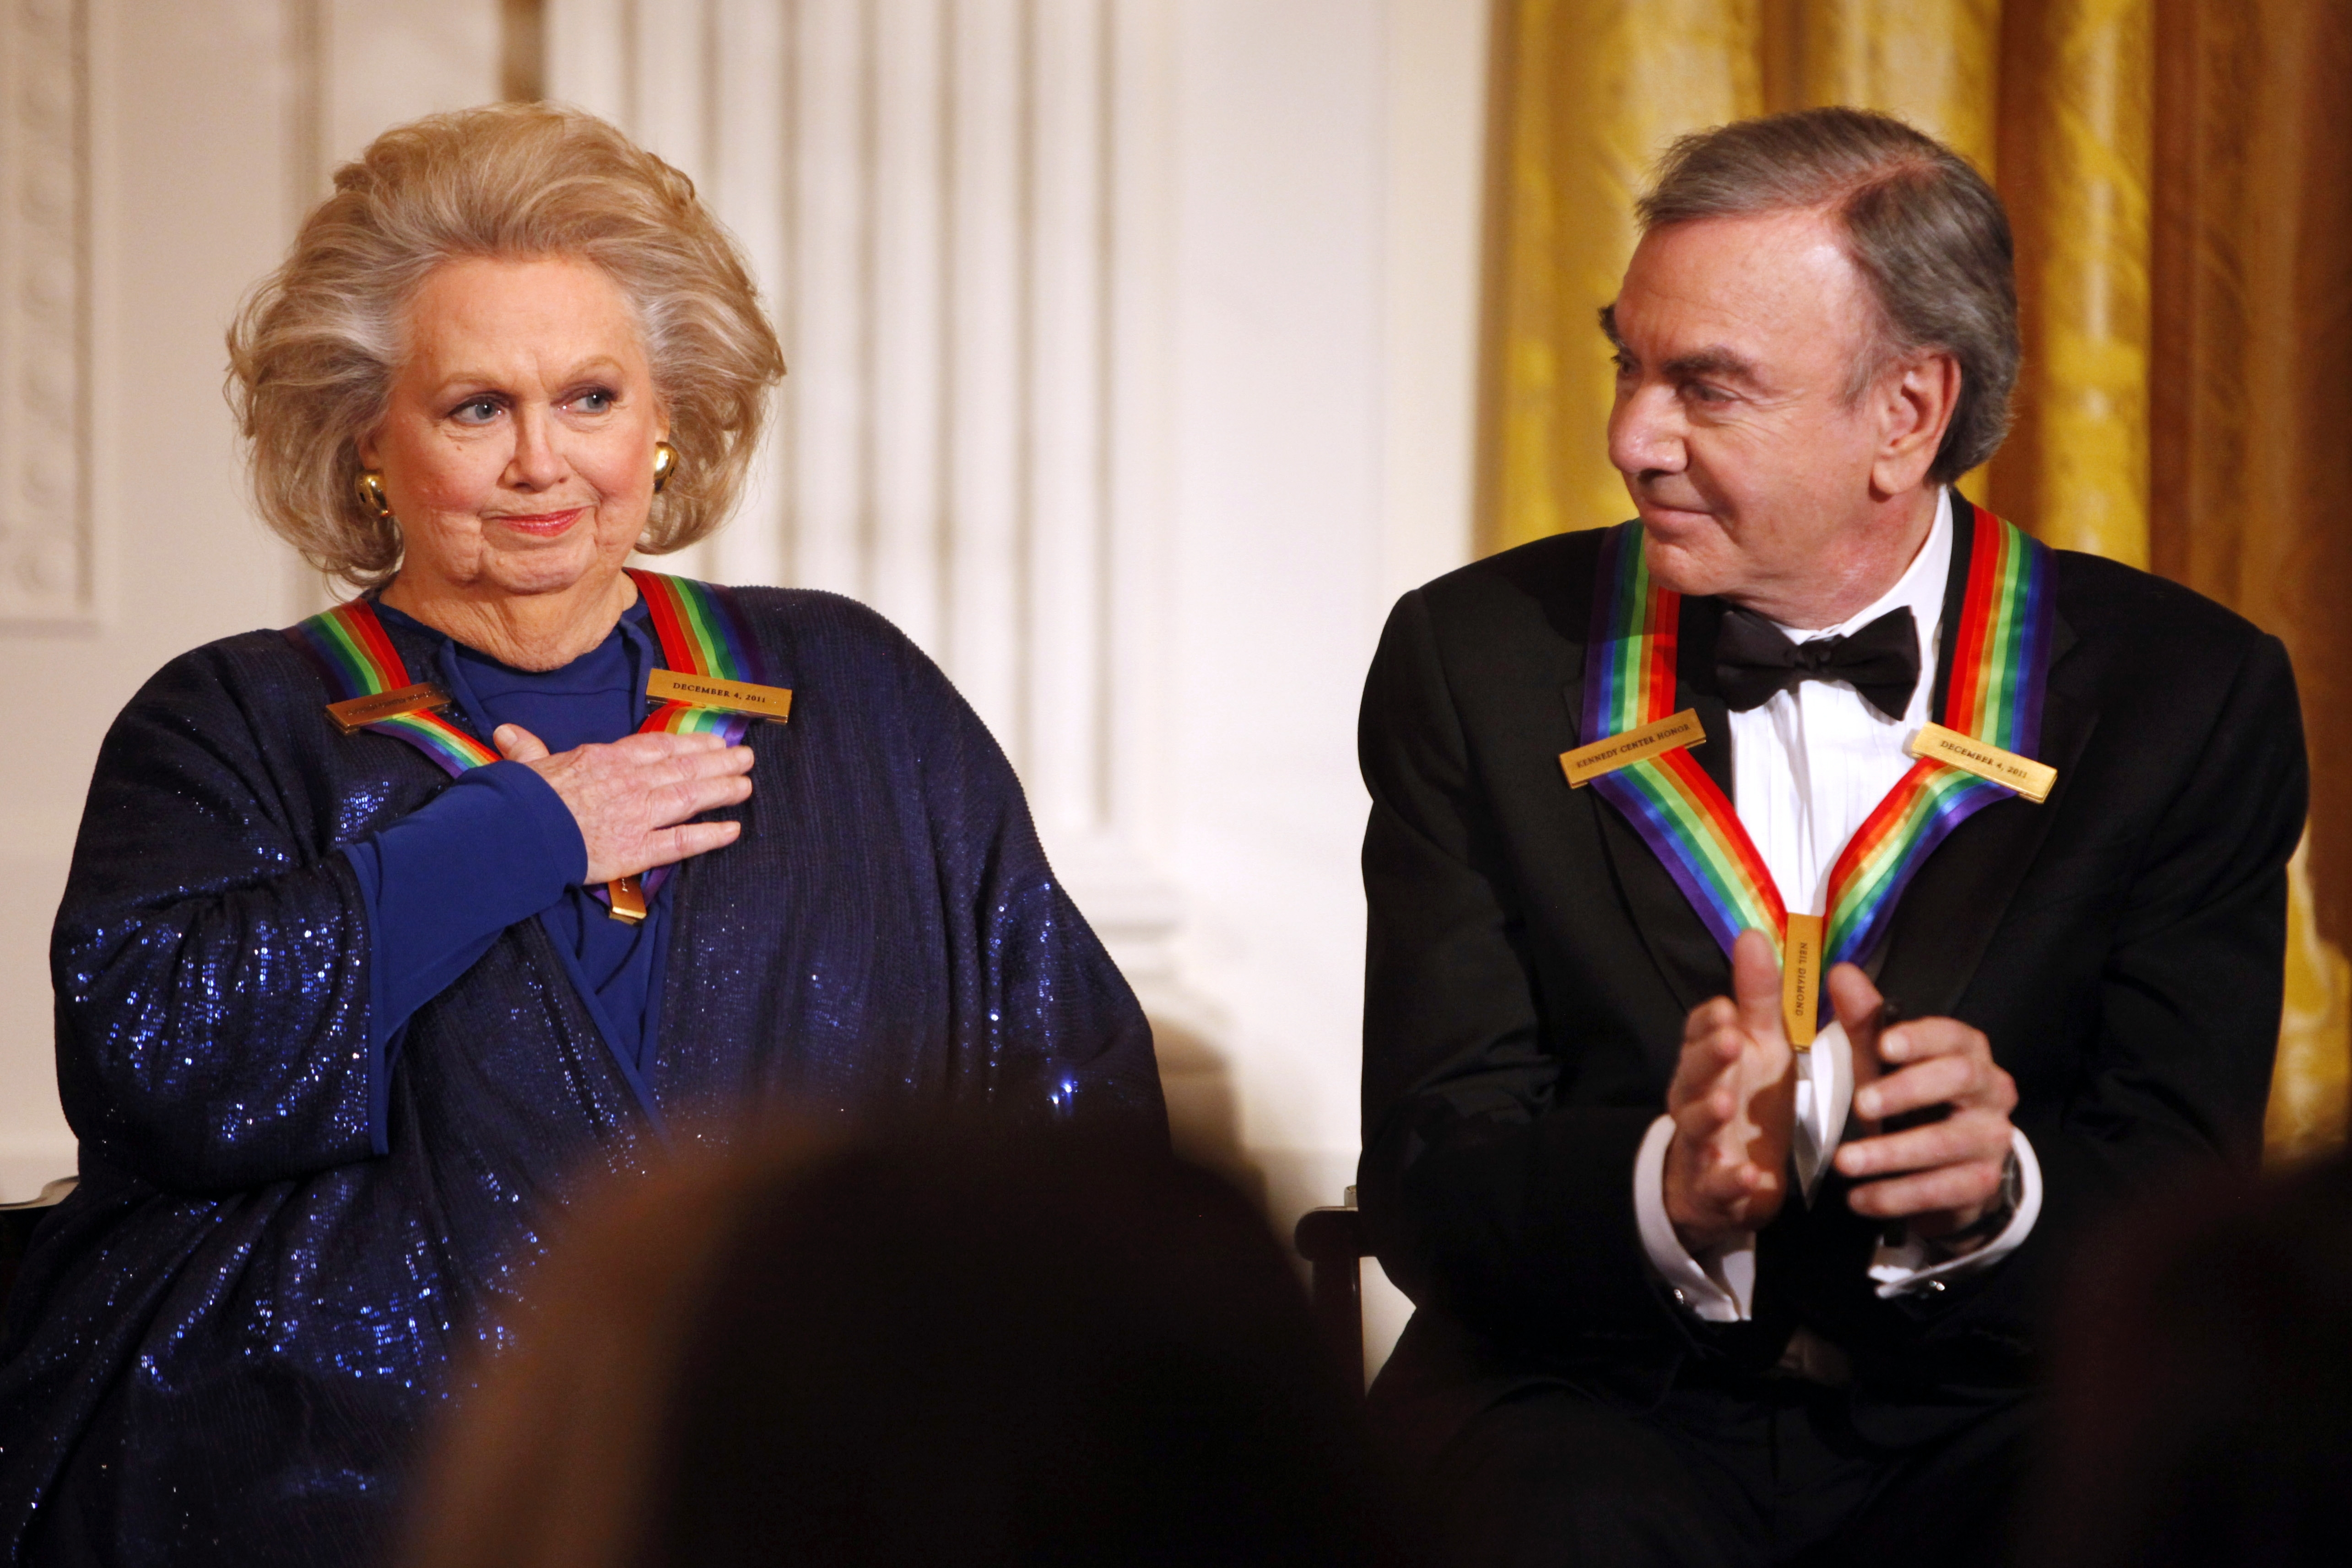 FILE - In this Dec. 4, 2011 file photo, actress-singer Barbara Cook, left, reacts to remarks from President Barack Obama, next to fellow 2011 Kennedy Center Honors recipient singer and songwriter Neil Diamond, during at a reception for the honorees in the East Room of the White House, in Washington. Cook, whose shimmering soprano made her one of Broadway's leading ingenues and later a major cabaret and concert interpreter of popular American song, has died. She was 89. (AP Photo/Jacquelyn Martin, File)